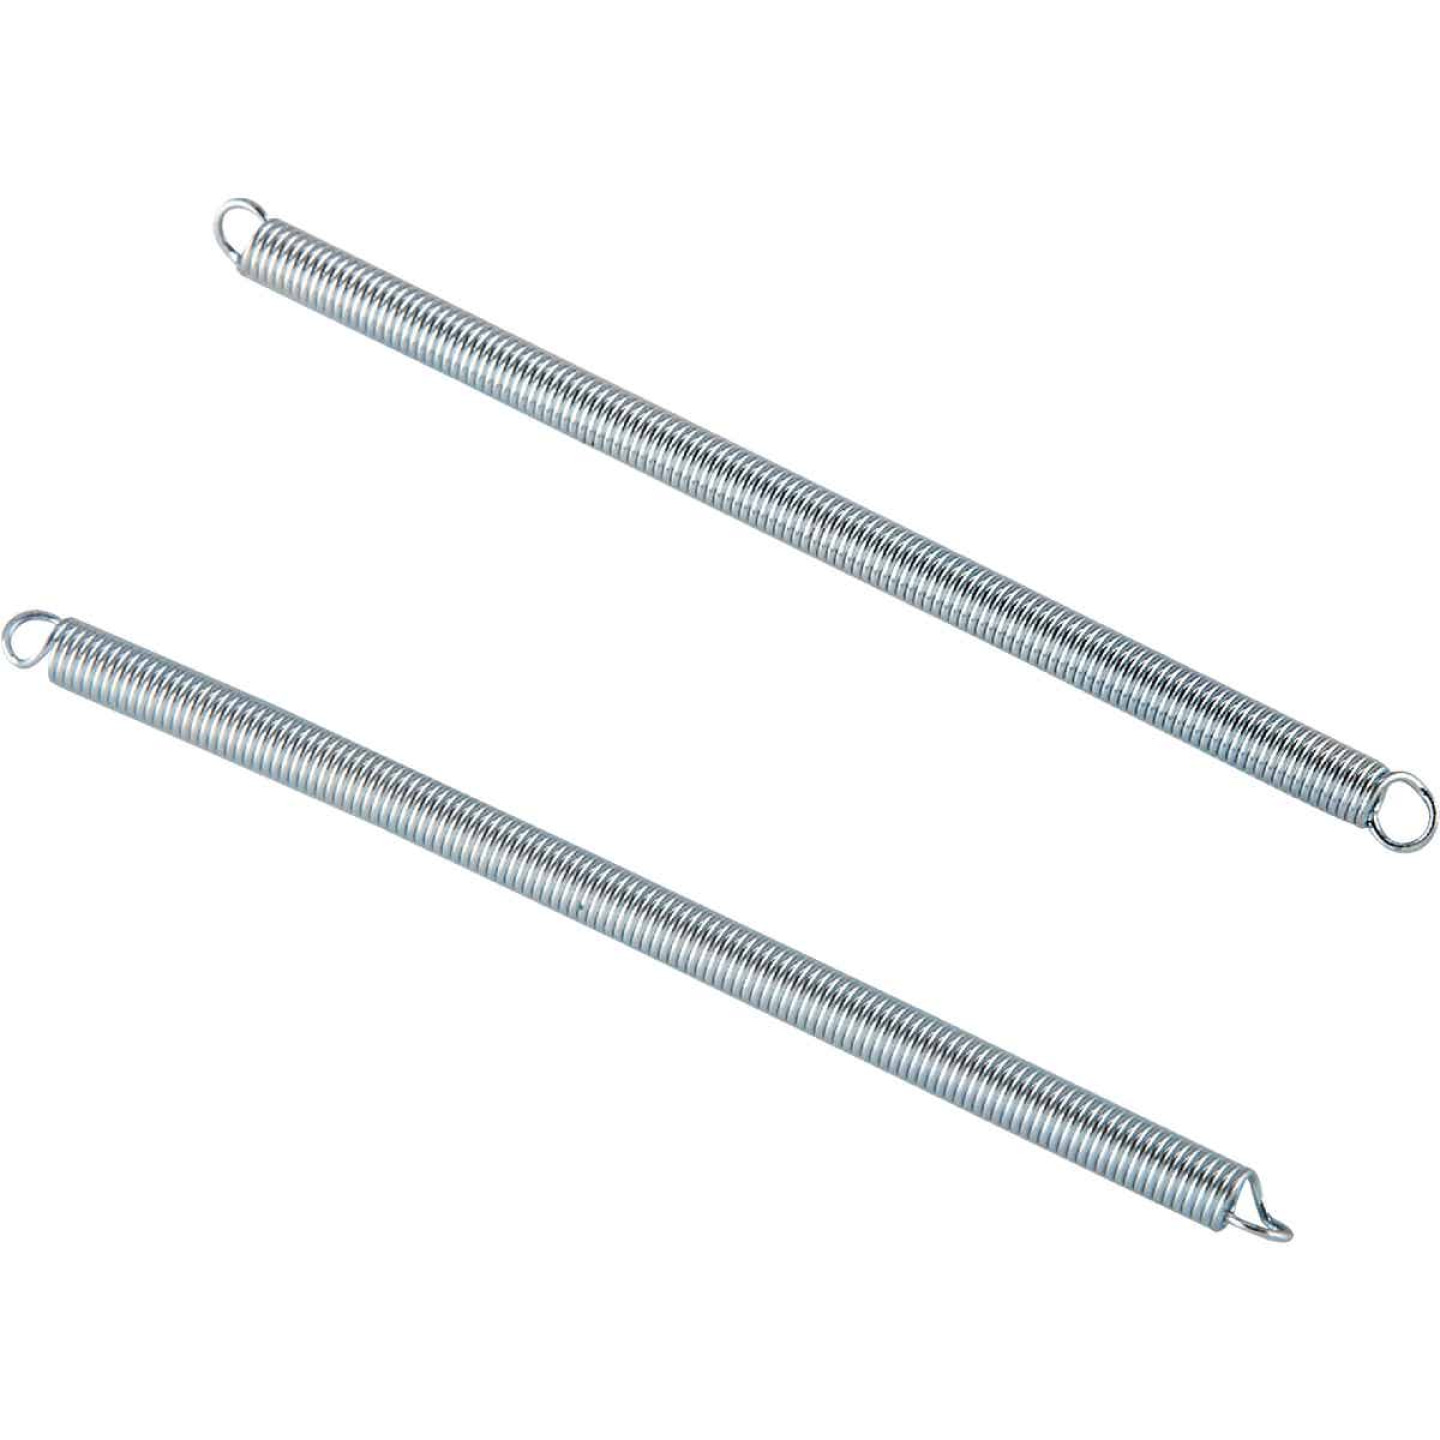 Century Spring 2-1/2 In. x 3/16 In. Extension Spring (2 Count) Image 1